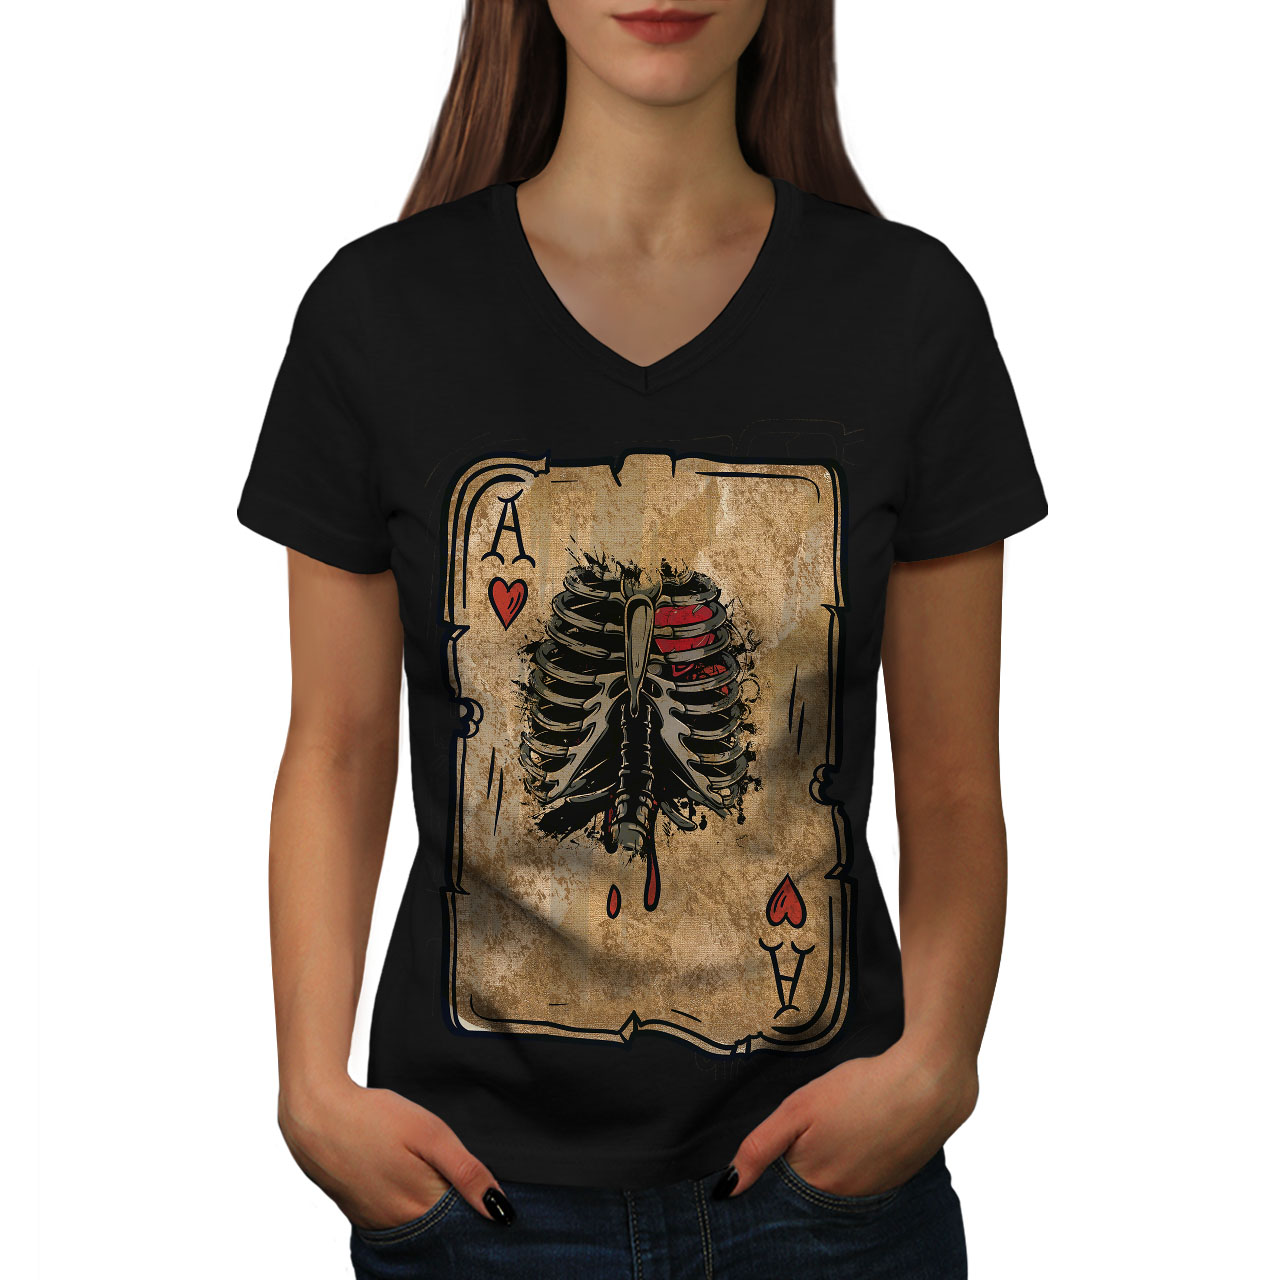 Wellcoda-Poker-Cartes-Skelet-Femme-T-Shirt-col-V-cage-thoracique-conception-graphique-Tee miniature 3